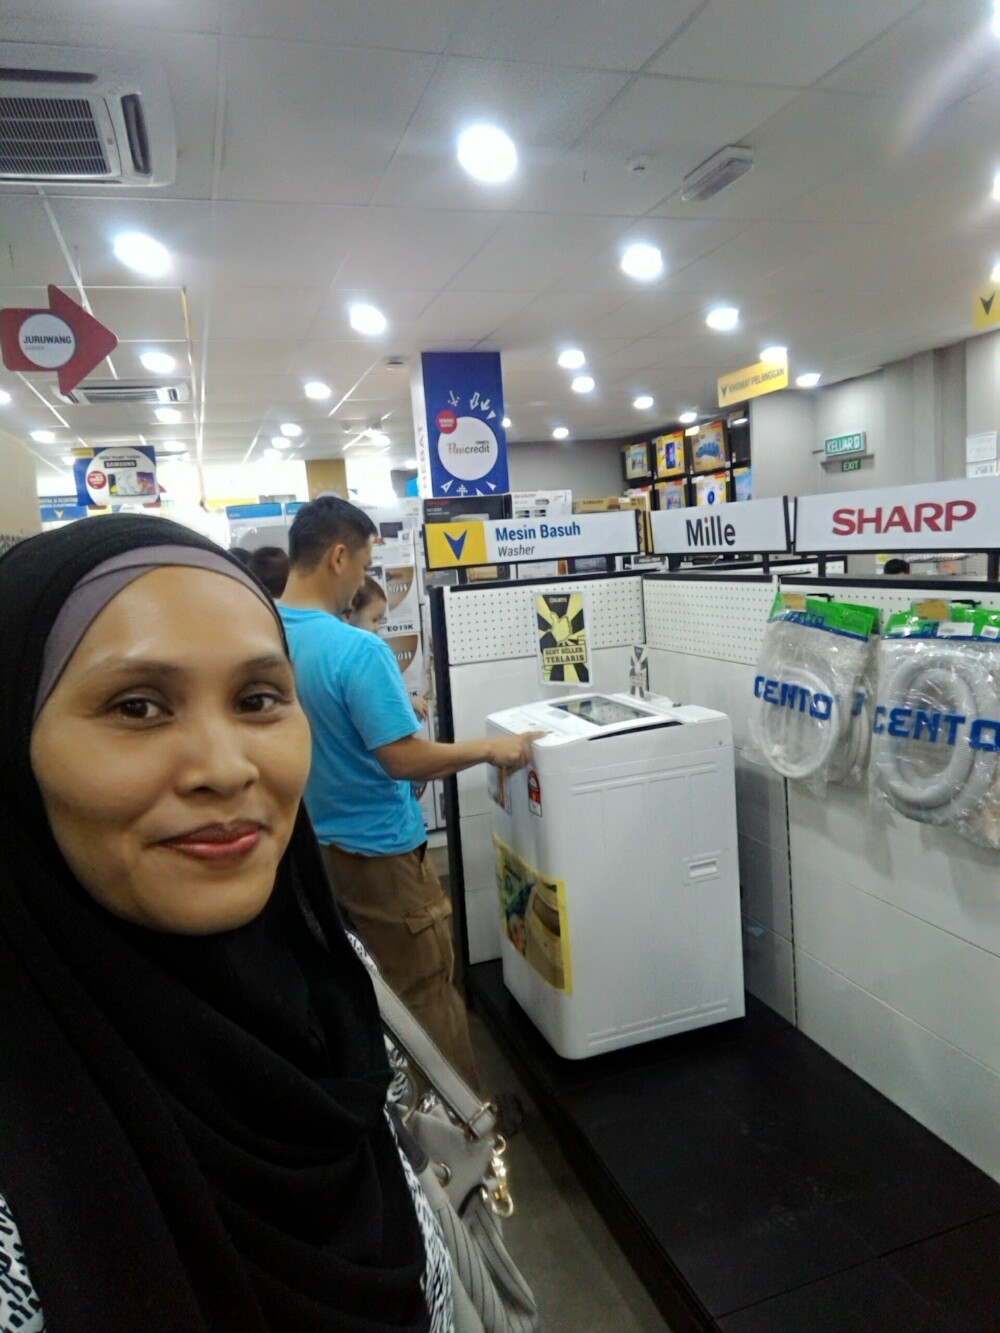 Beli washing machine Panasonic murah di COURTS